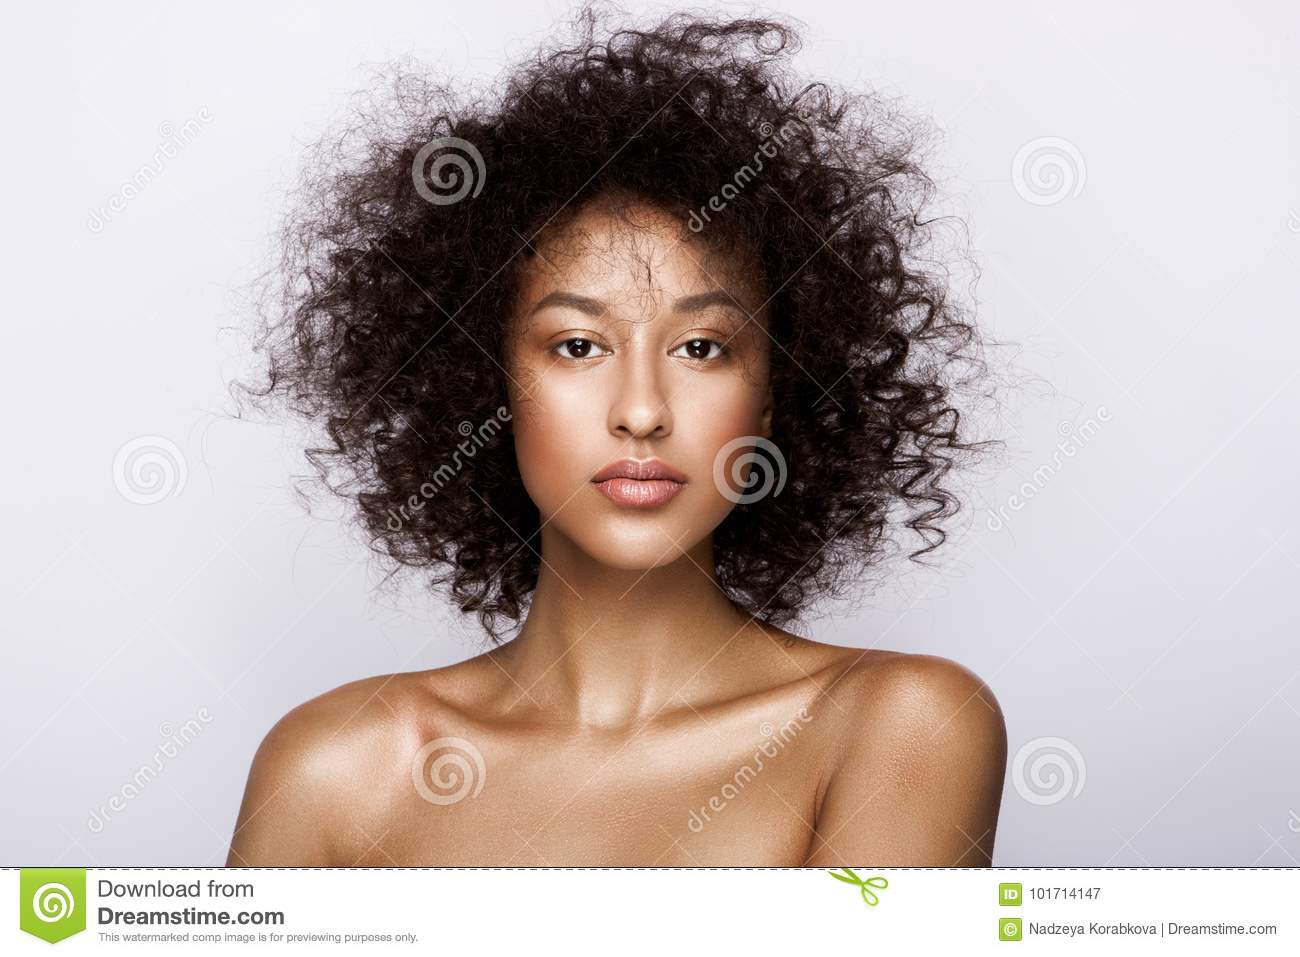 201 715 Beautiful African Woman Photos Free Royalty Free Stock Photos From Dreamstime